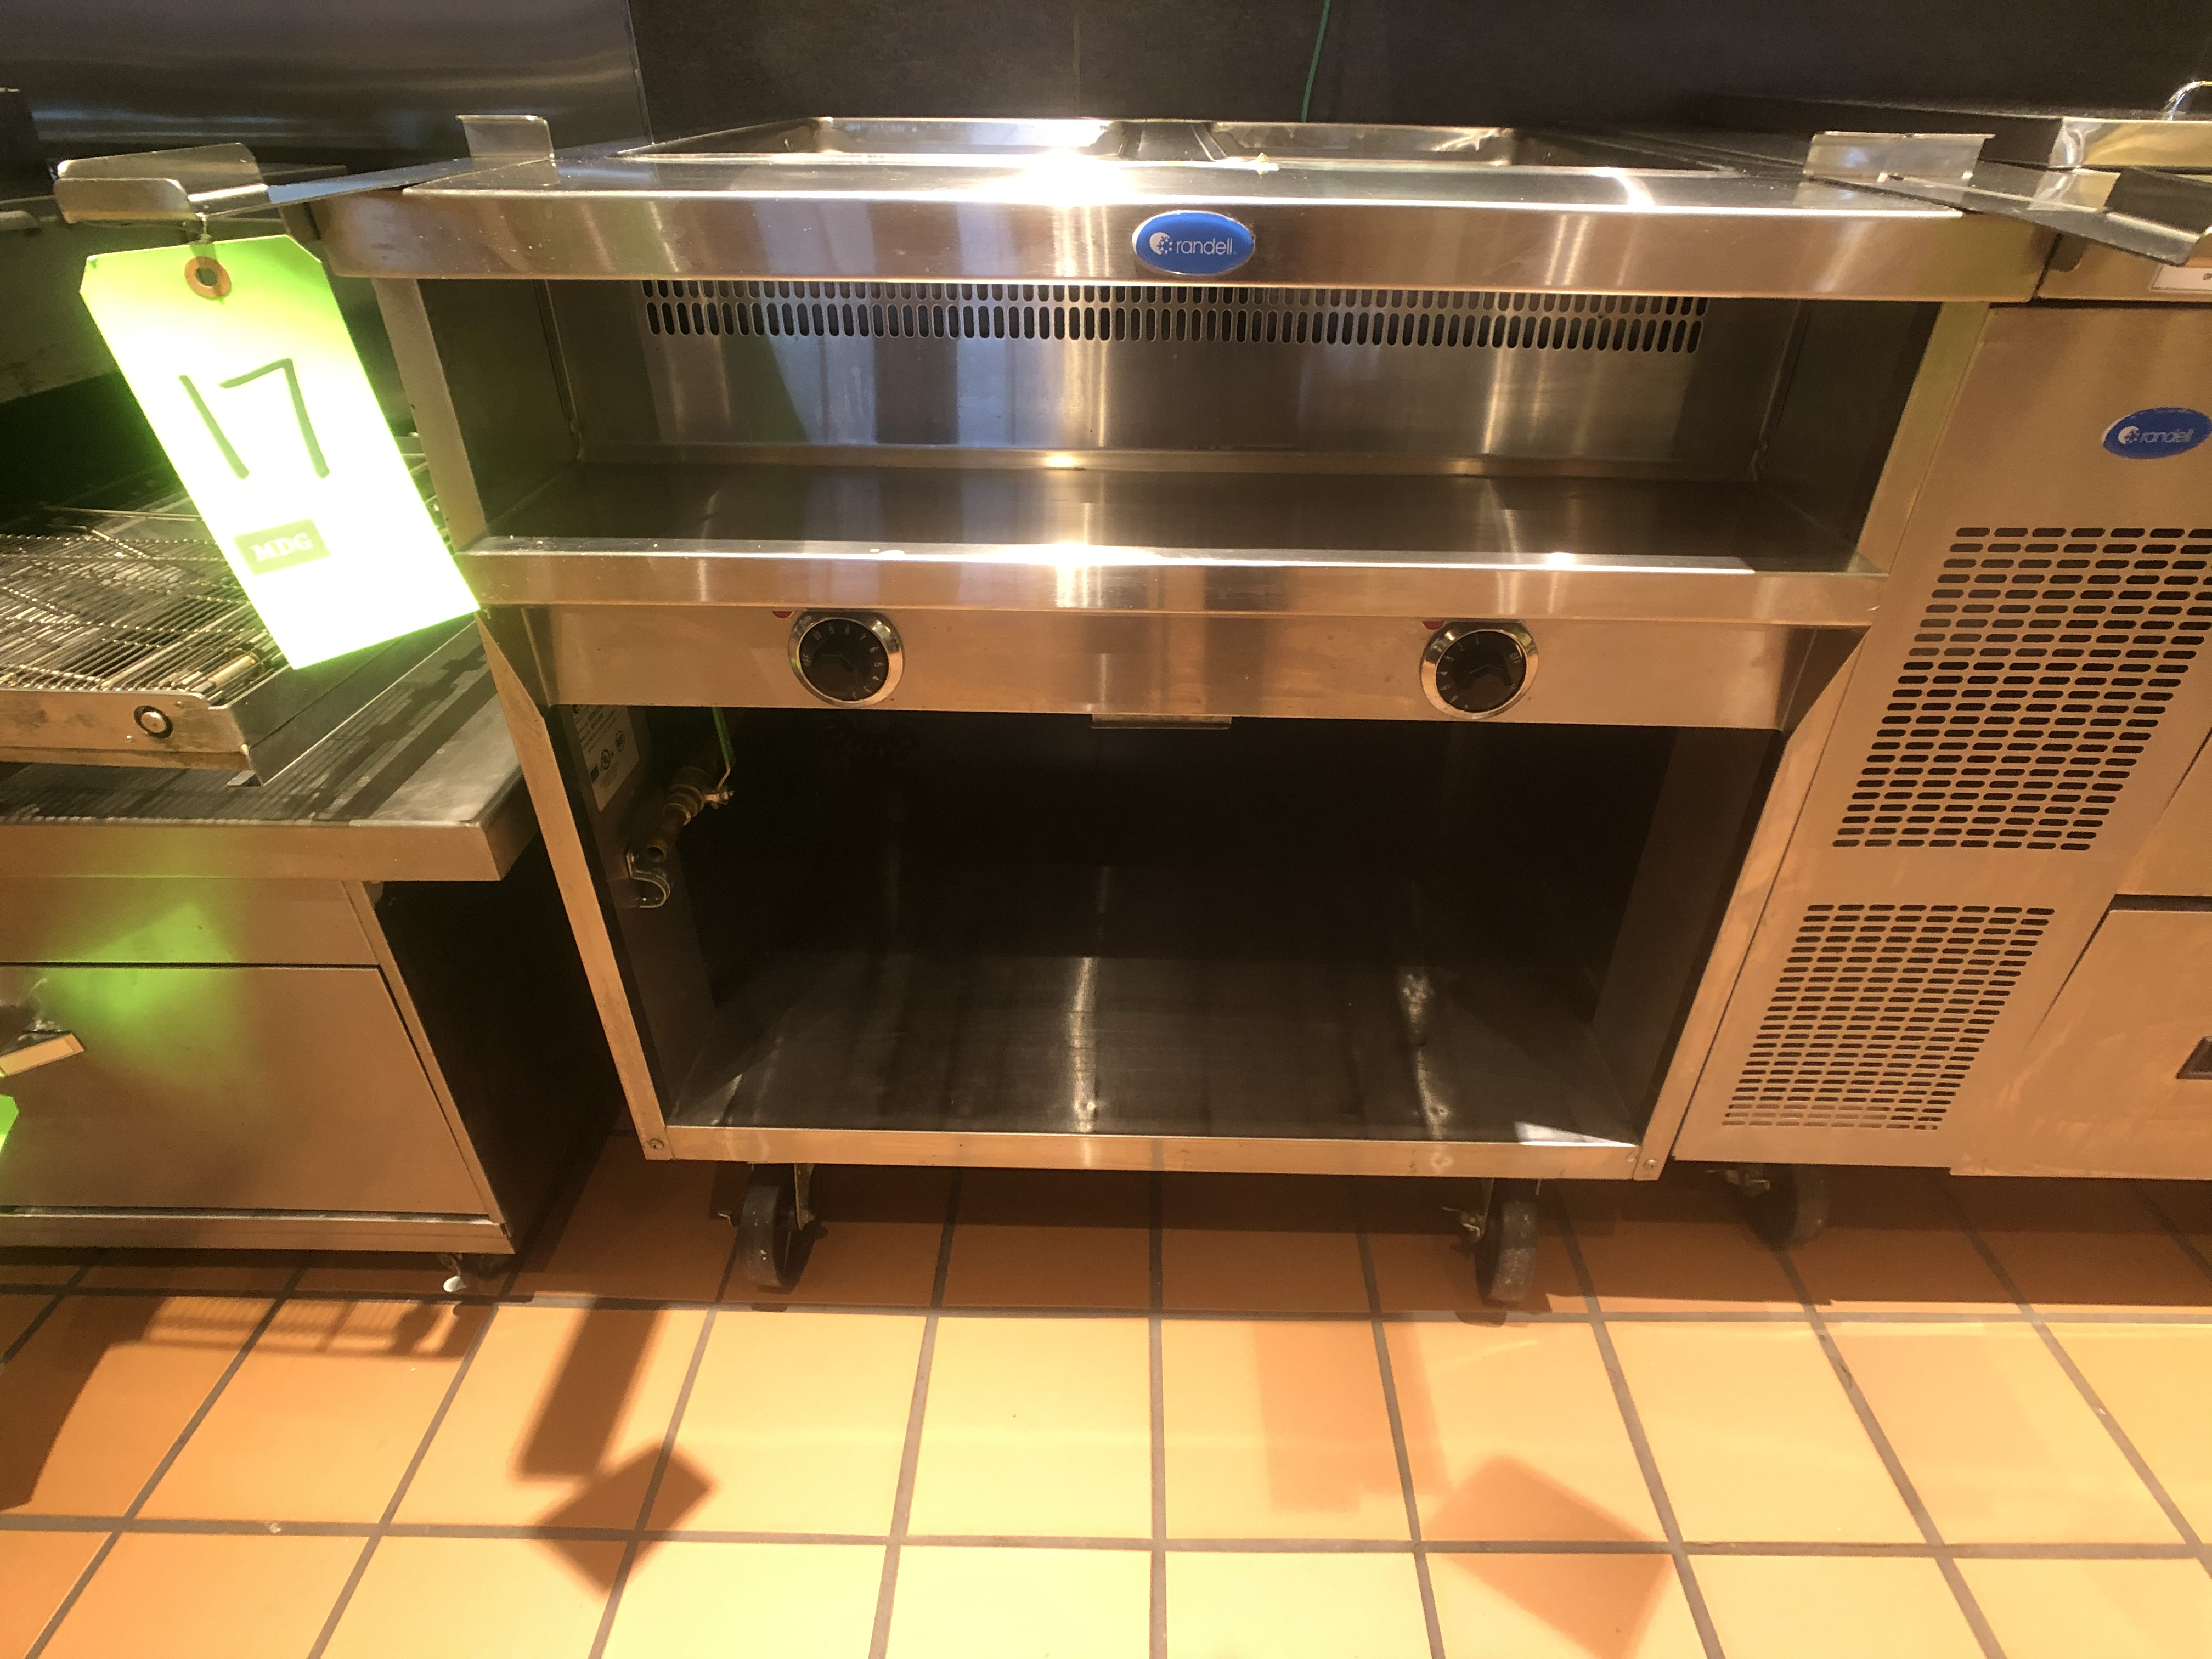 Randell Open Base Electric Hot Food Table, Model 3612-208, S/N W1041763-1, (2) Pan